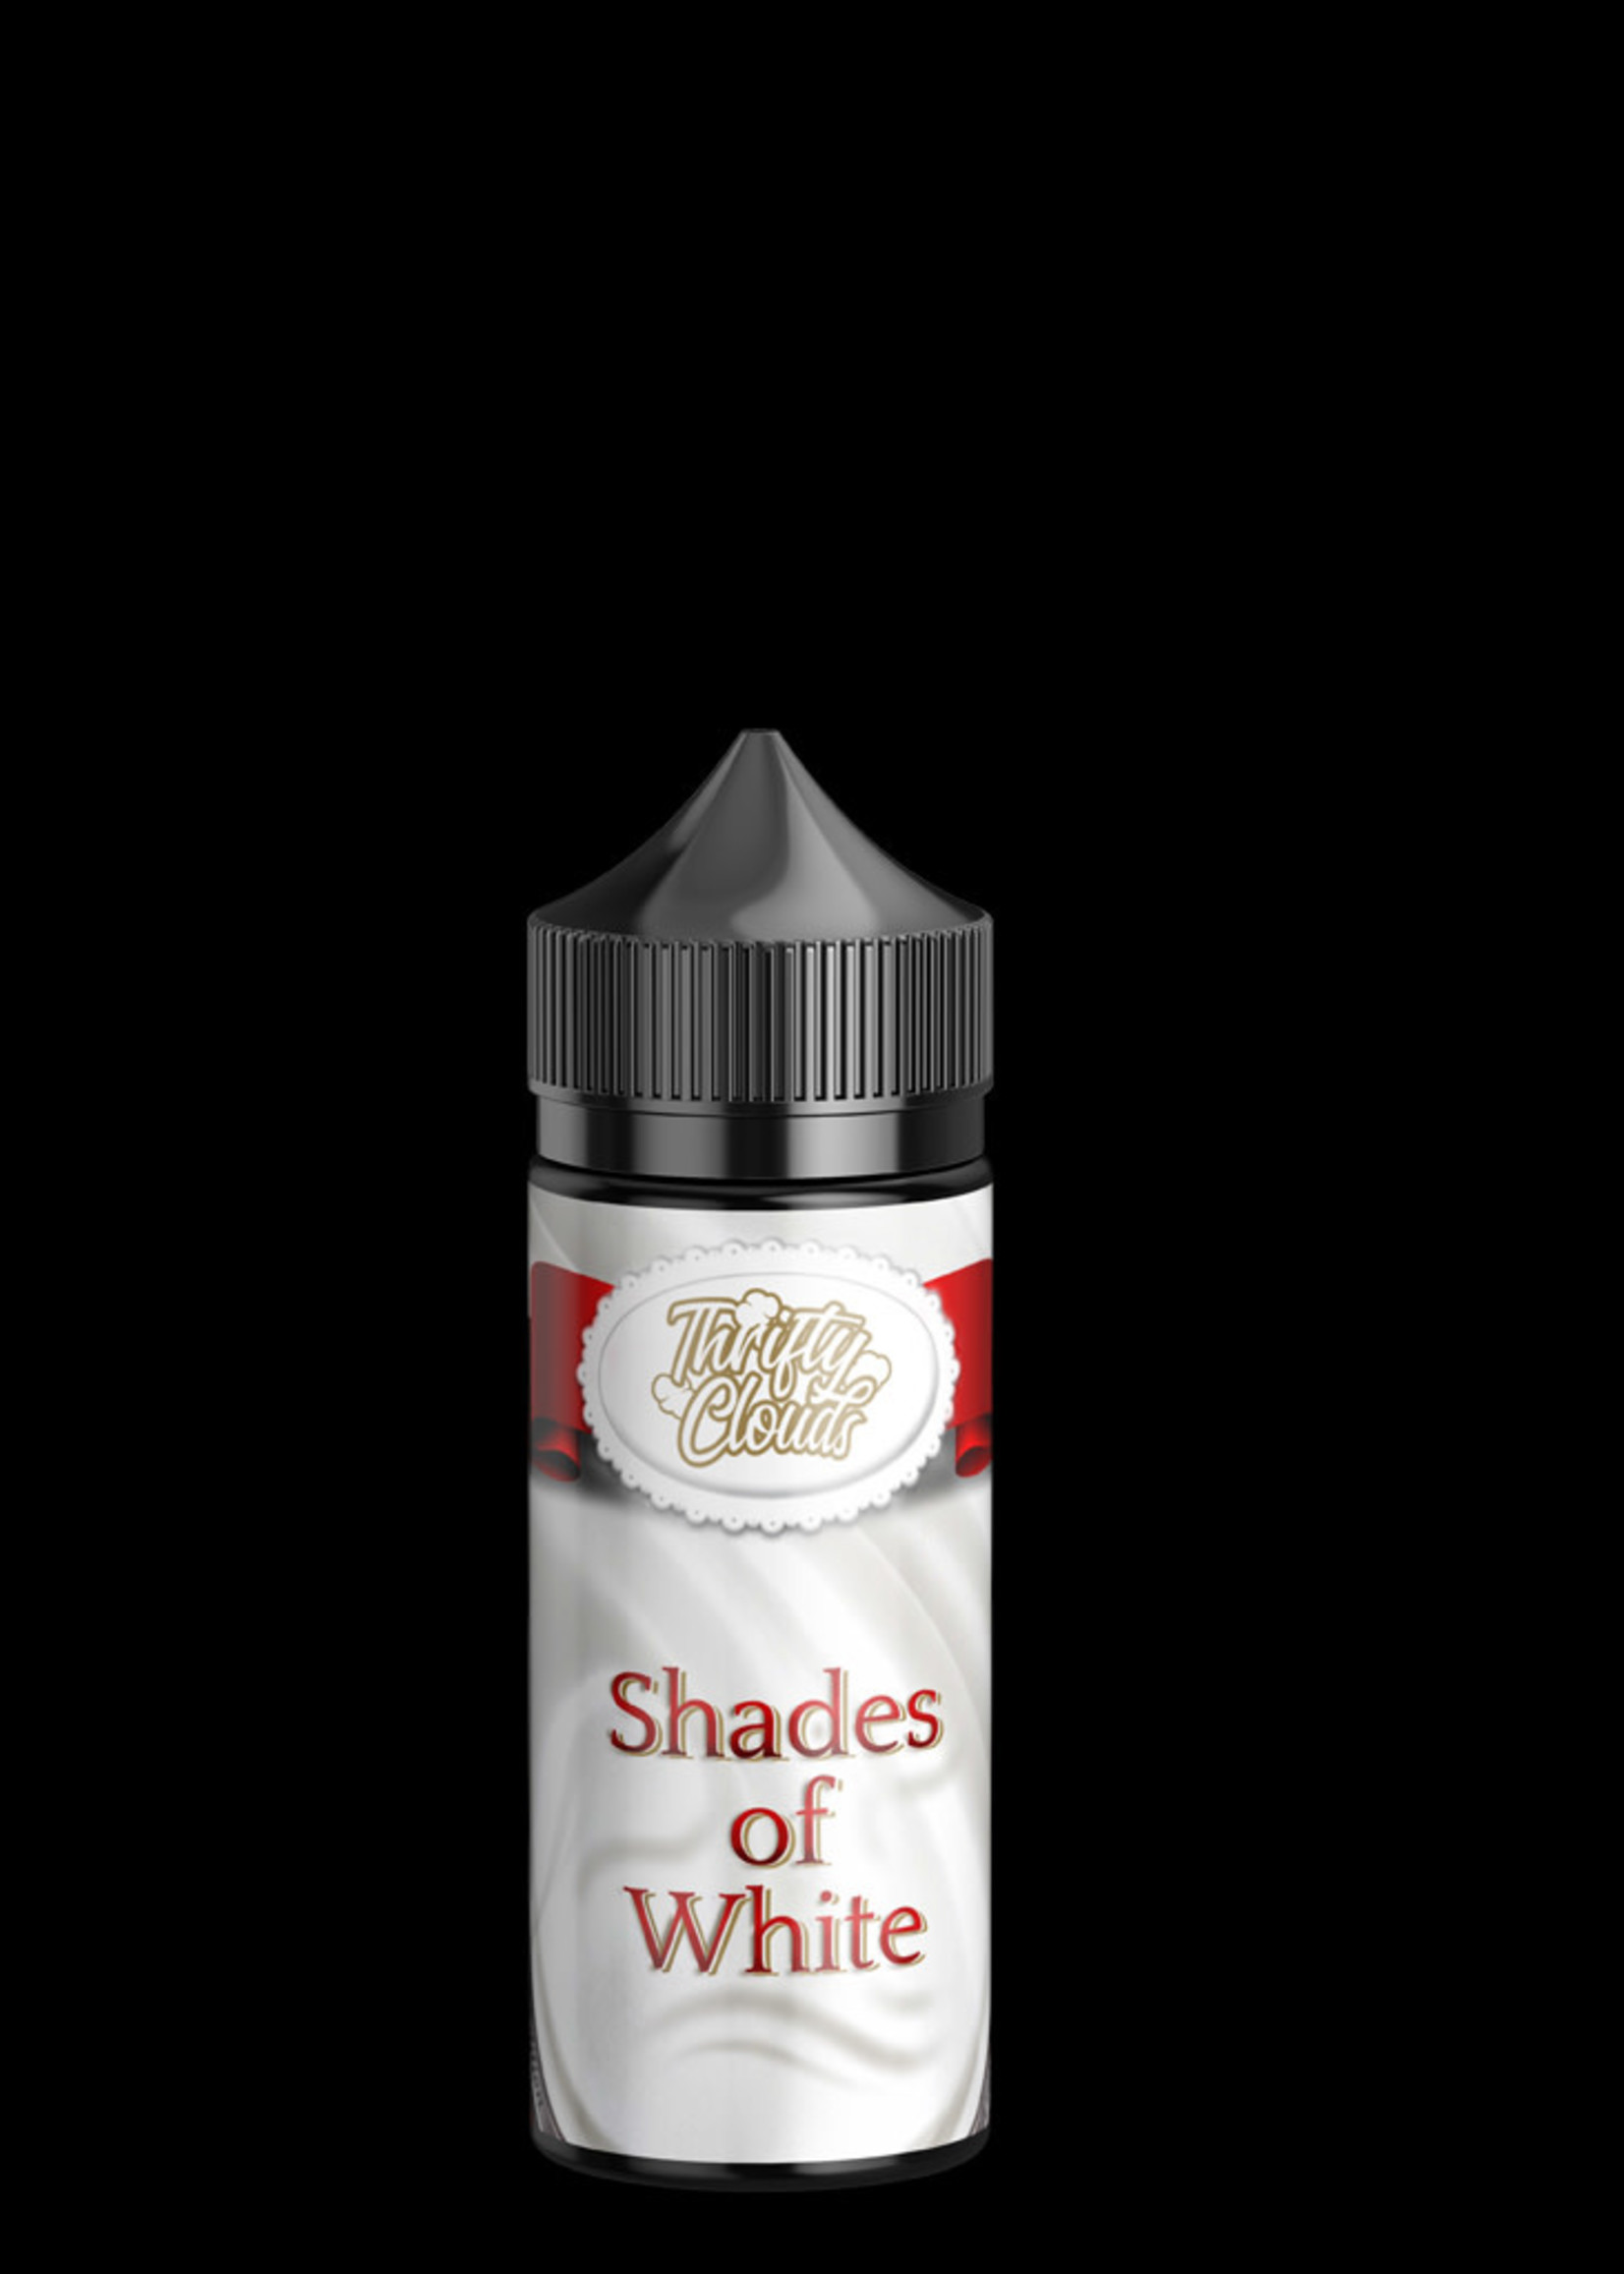 Thrifty clouds Vape flavour - Shades of white 100ml- 3mg